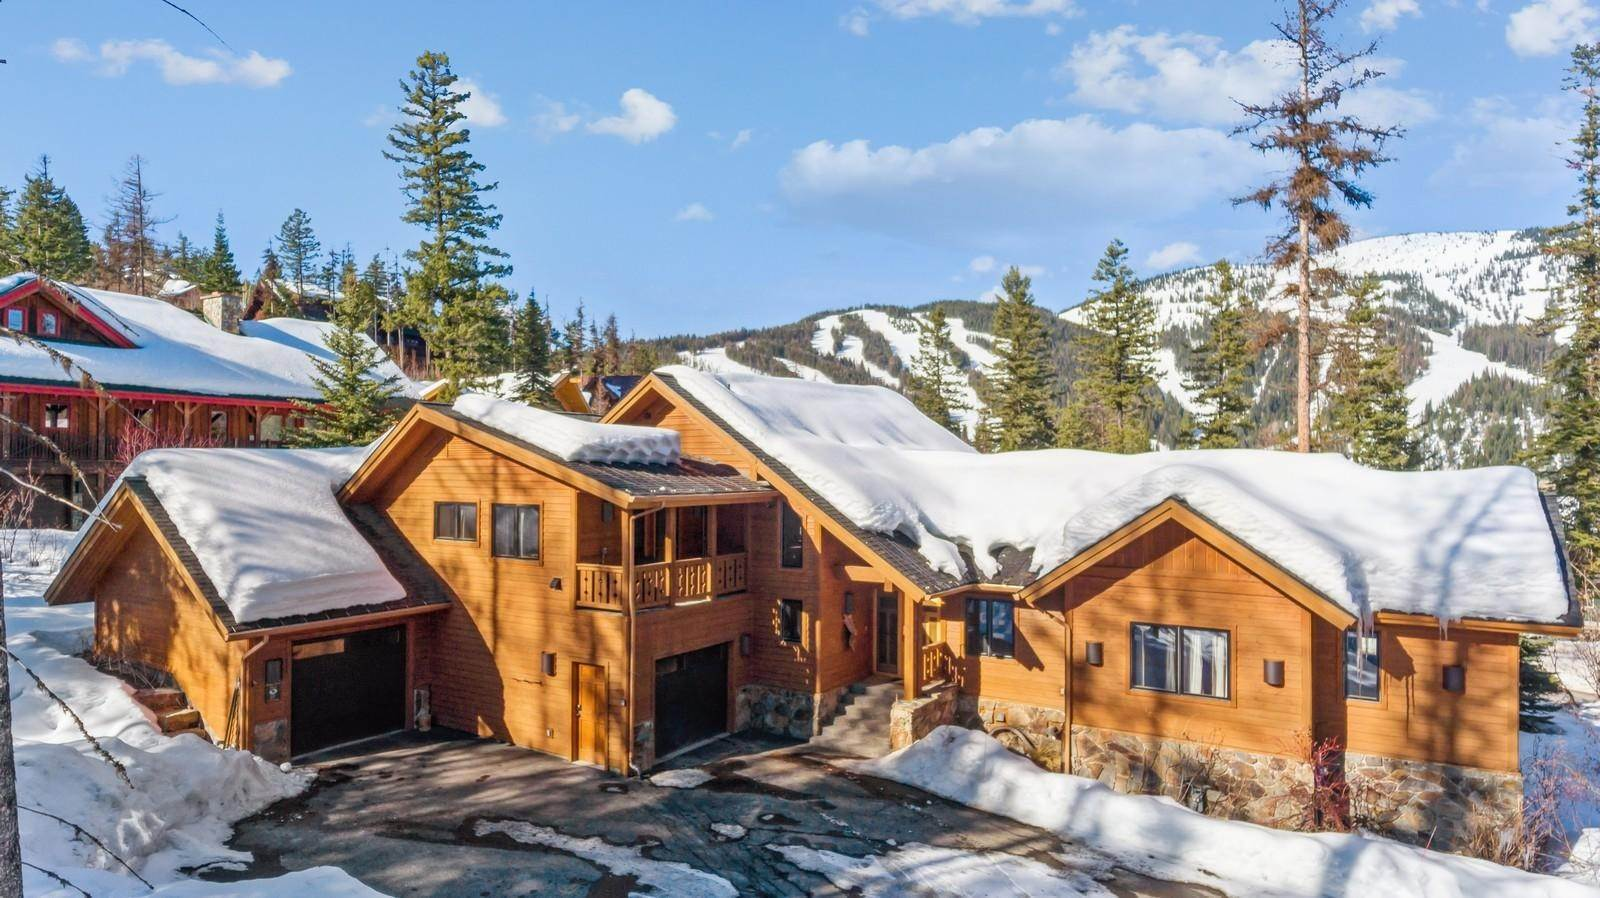 Single Family Homes for Sale at 137 Ridge Run Drive Whitefish, Montana 59937 United States